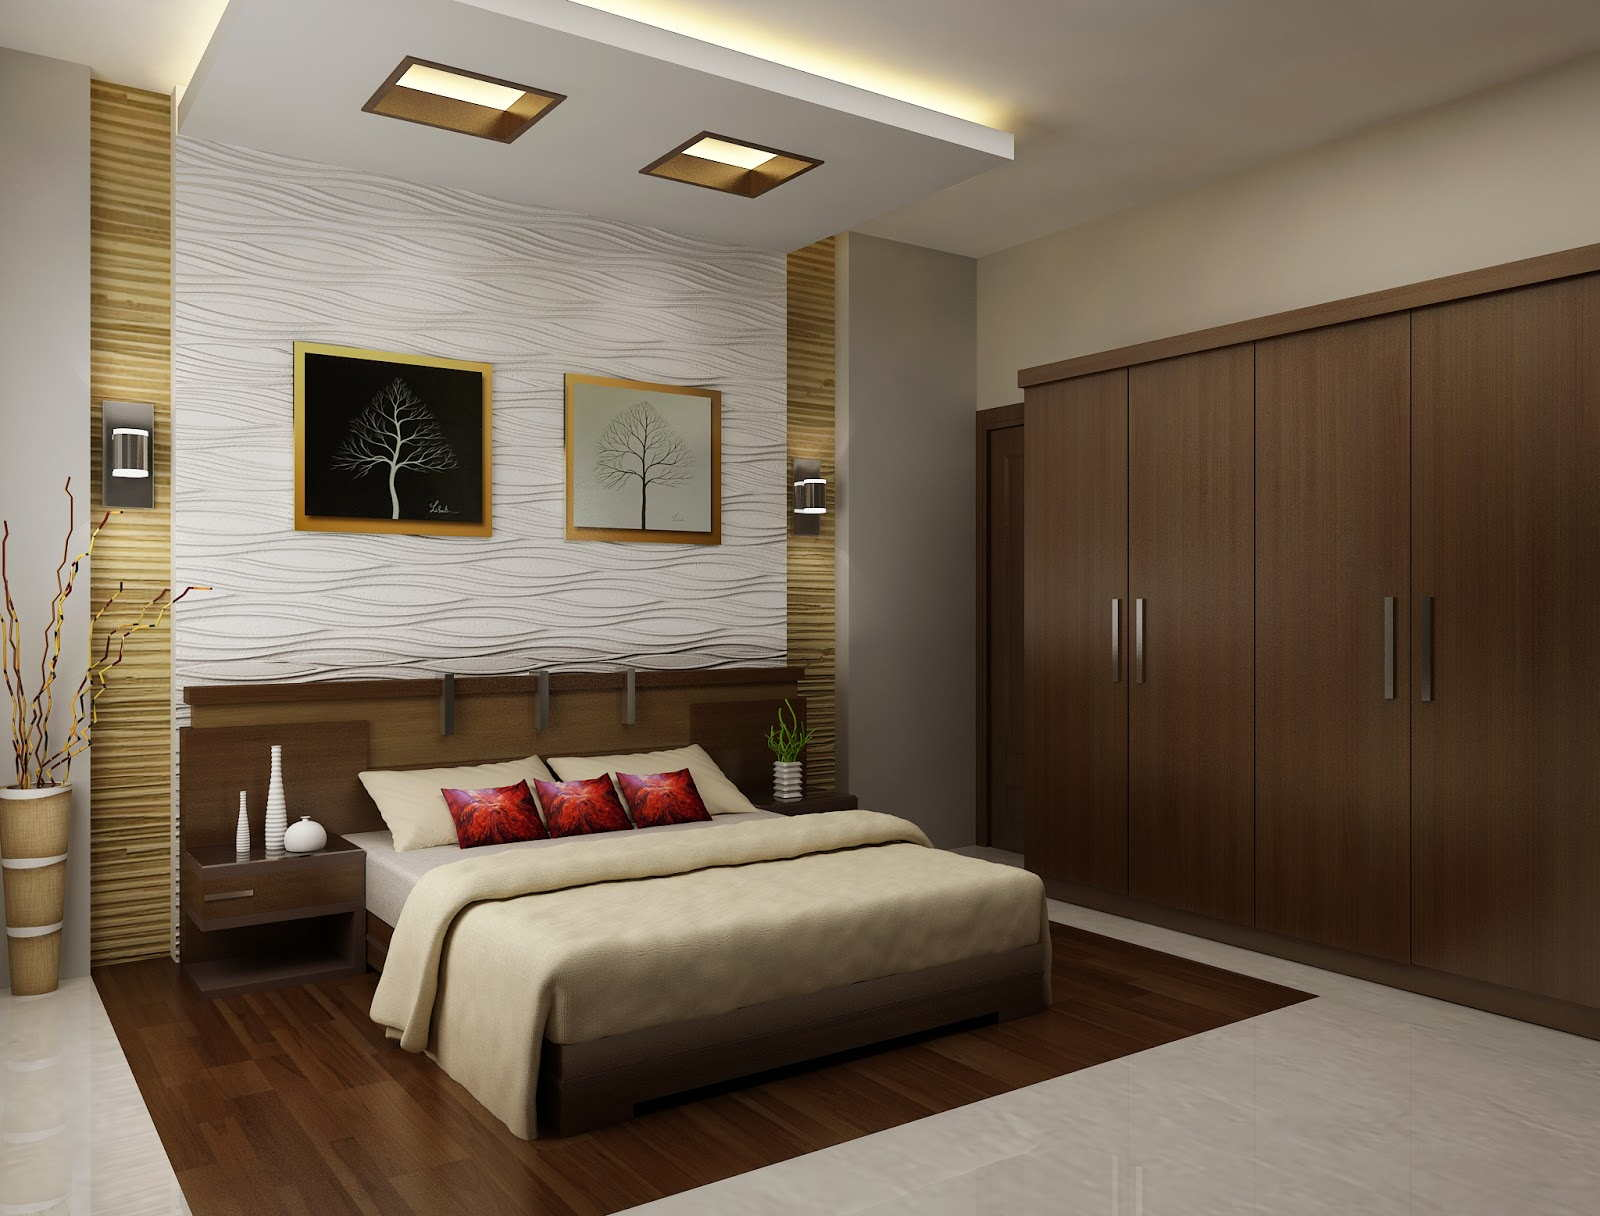 11 Attractive bedroom design ideas that will make your ...